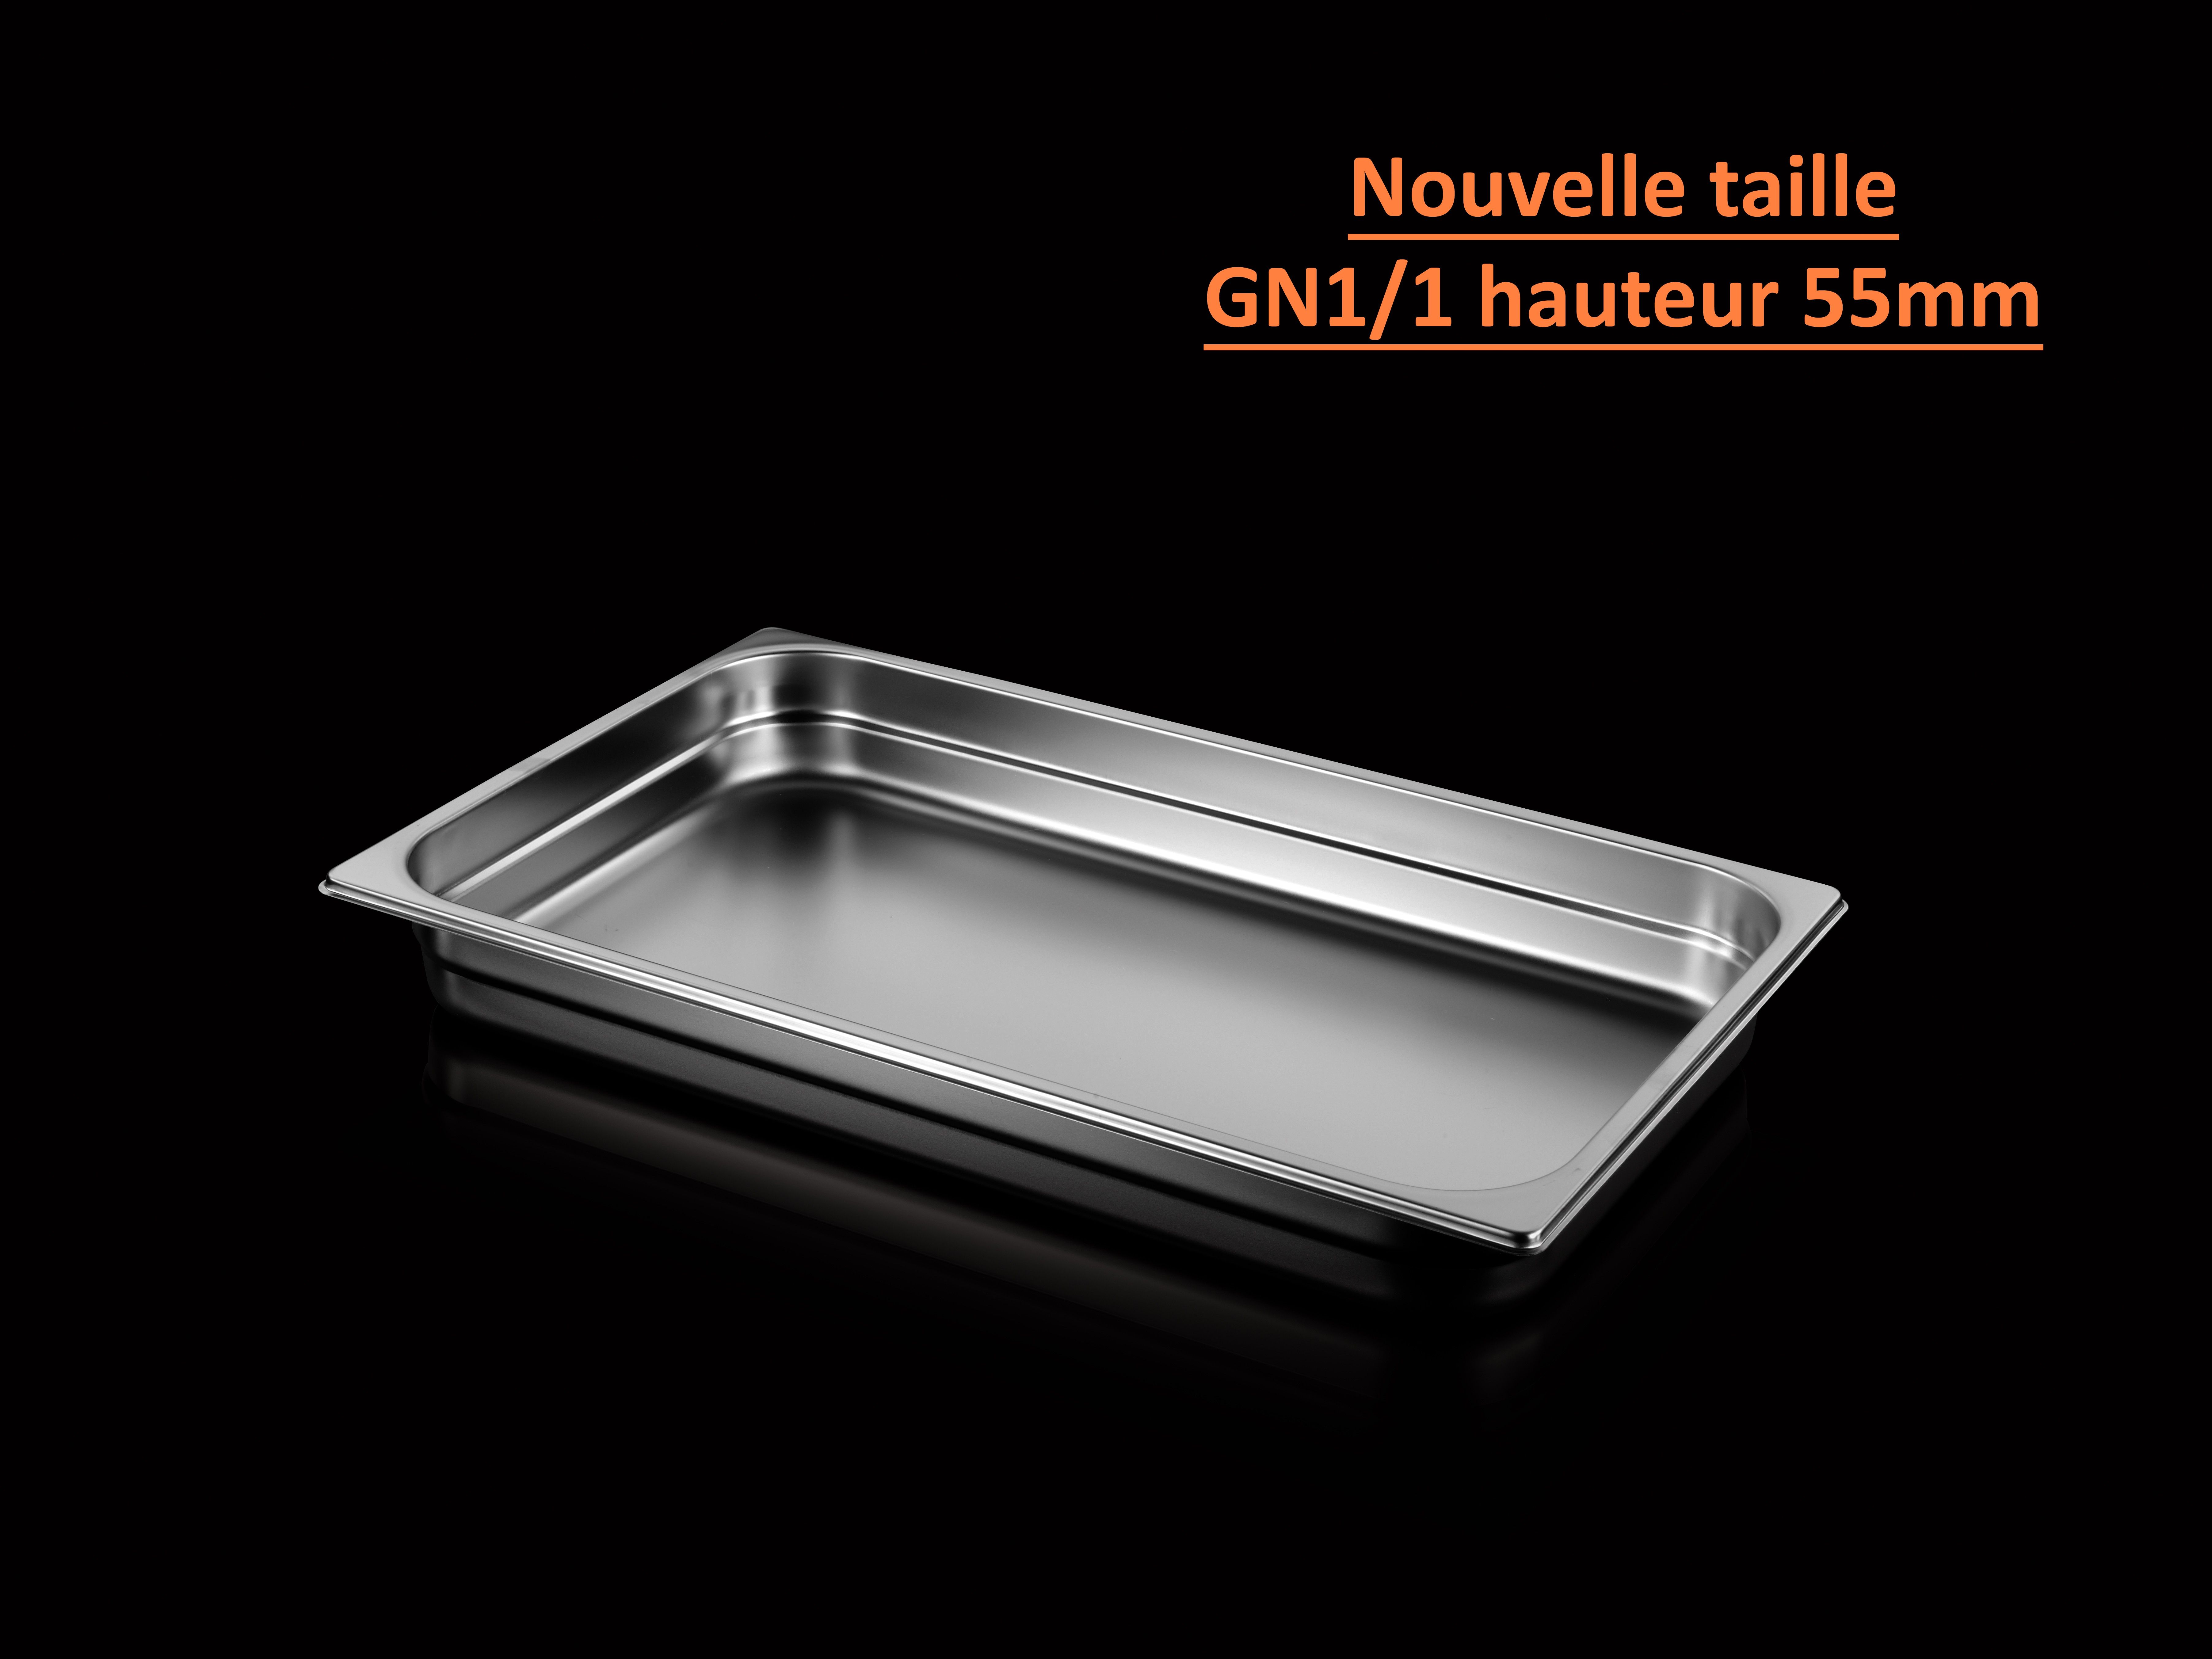 Nouvelle taille GN1/1 H.55mm